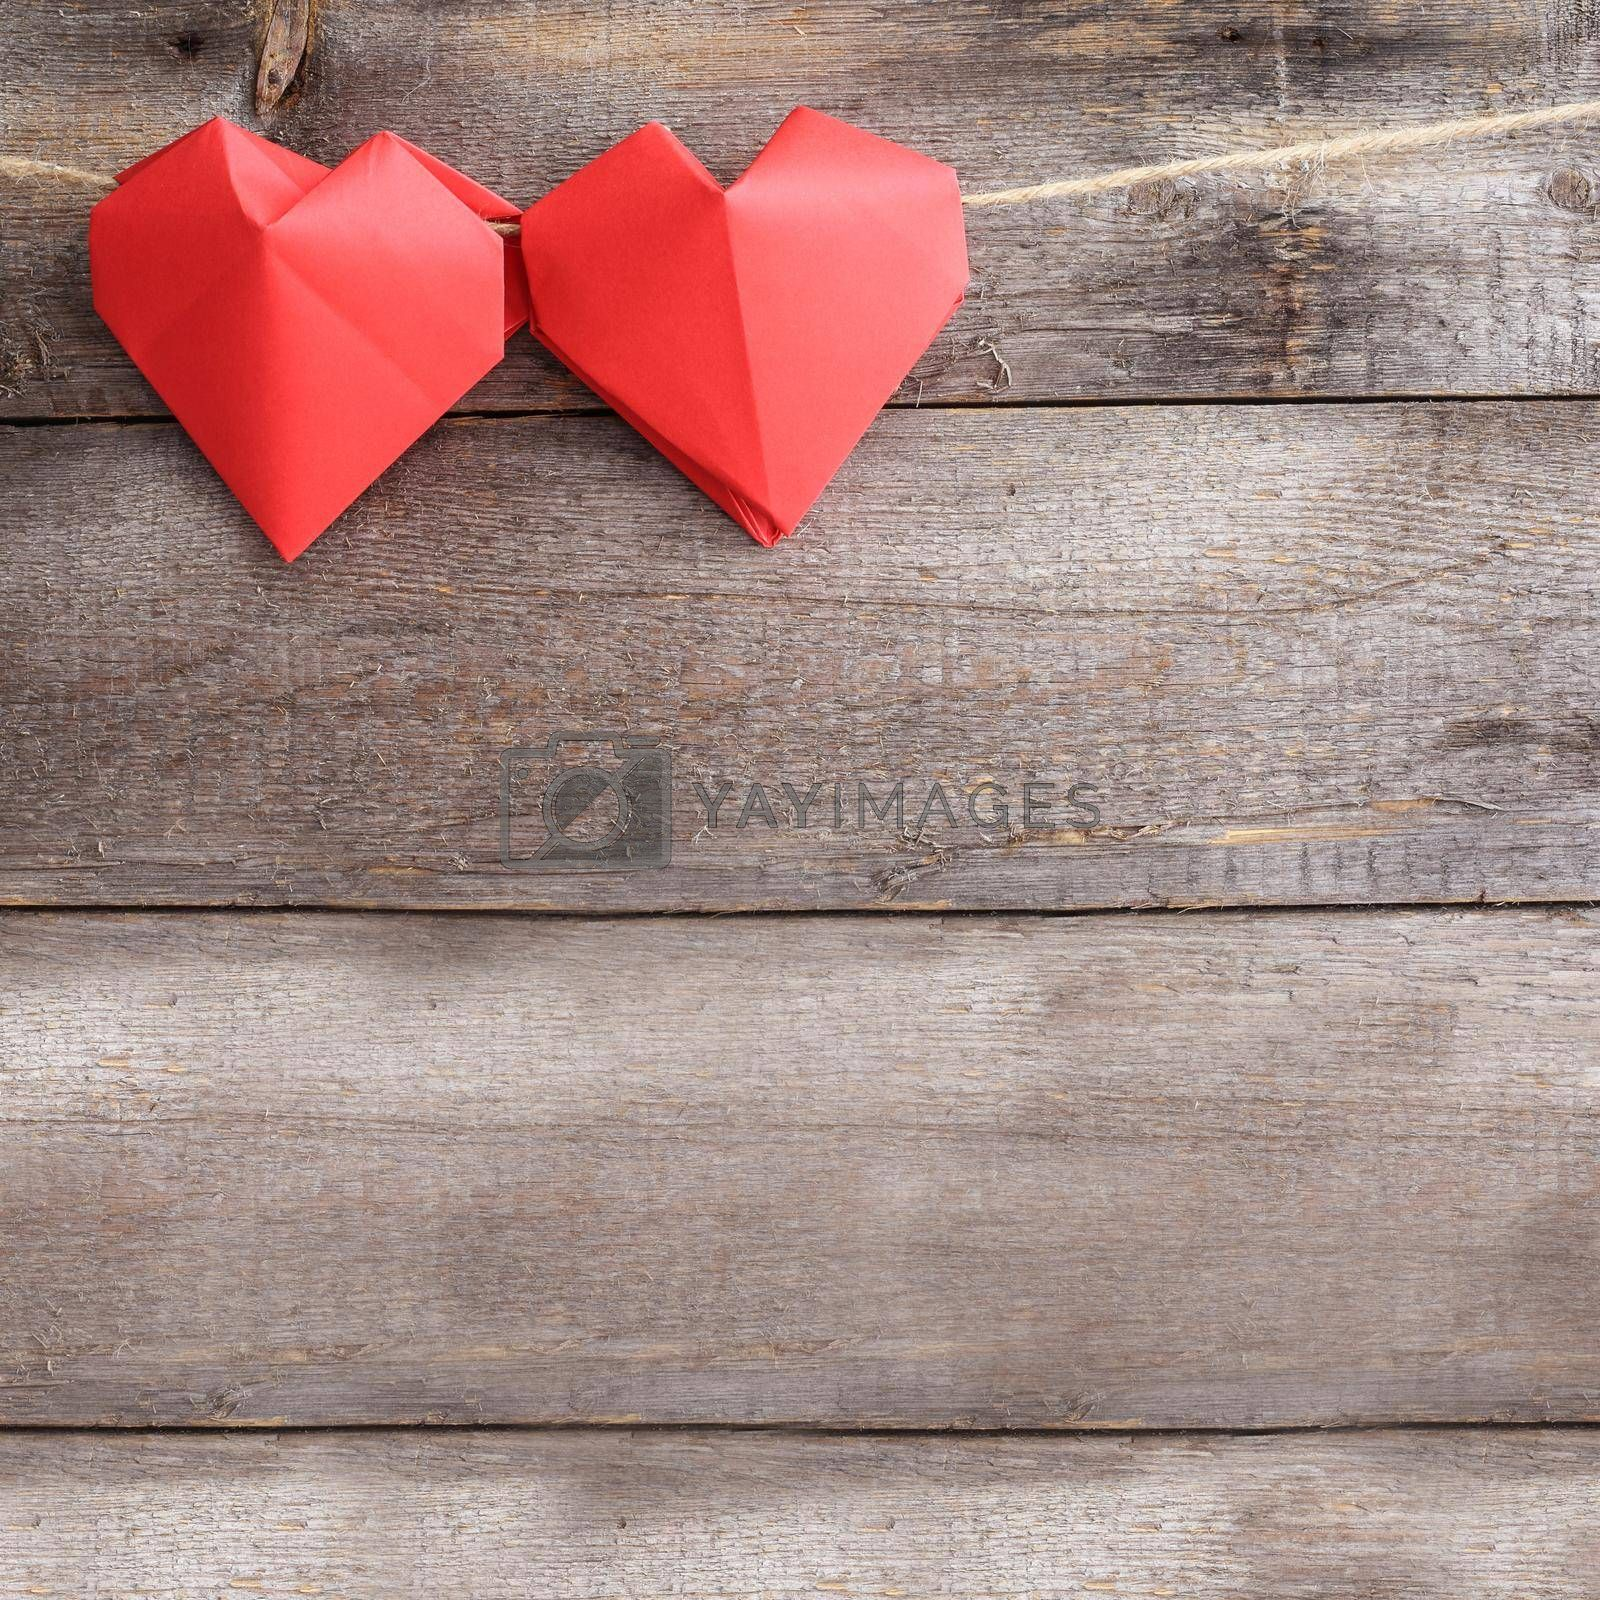 Red origami hearts on rope over wooden background, Valentines day concept, copy space for text